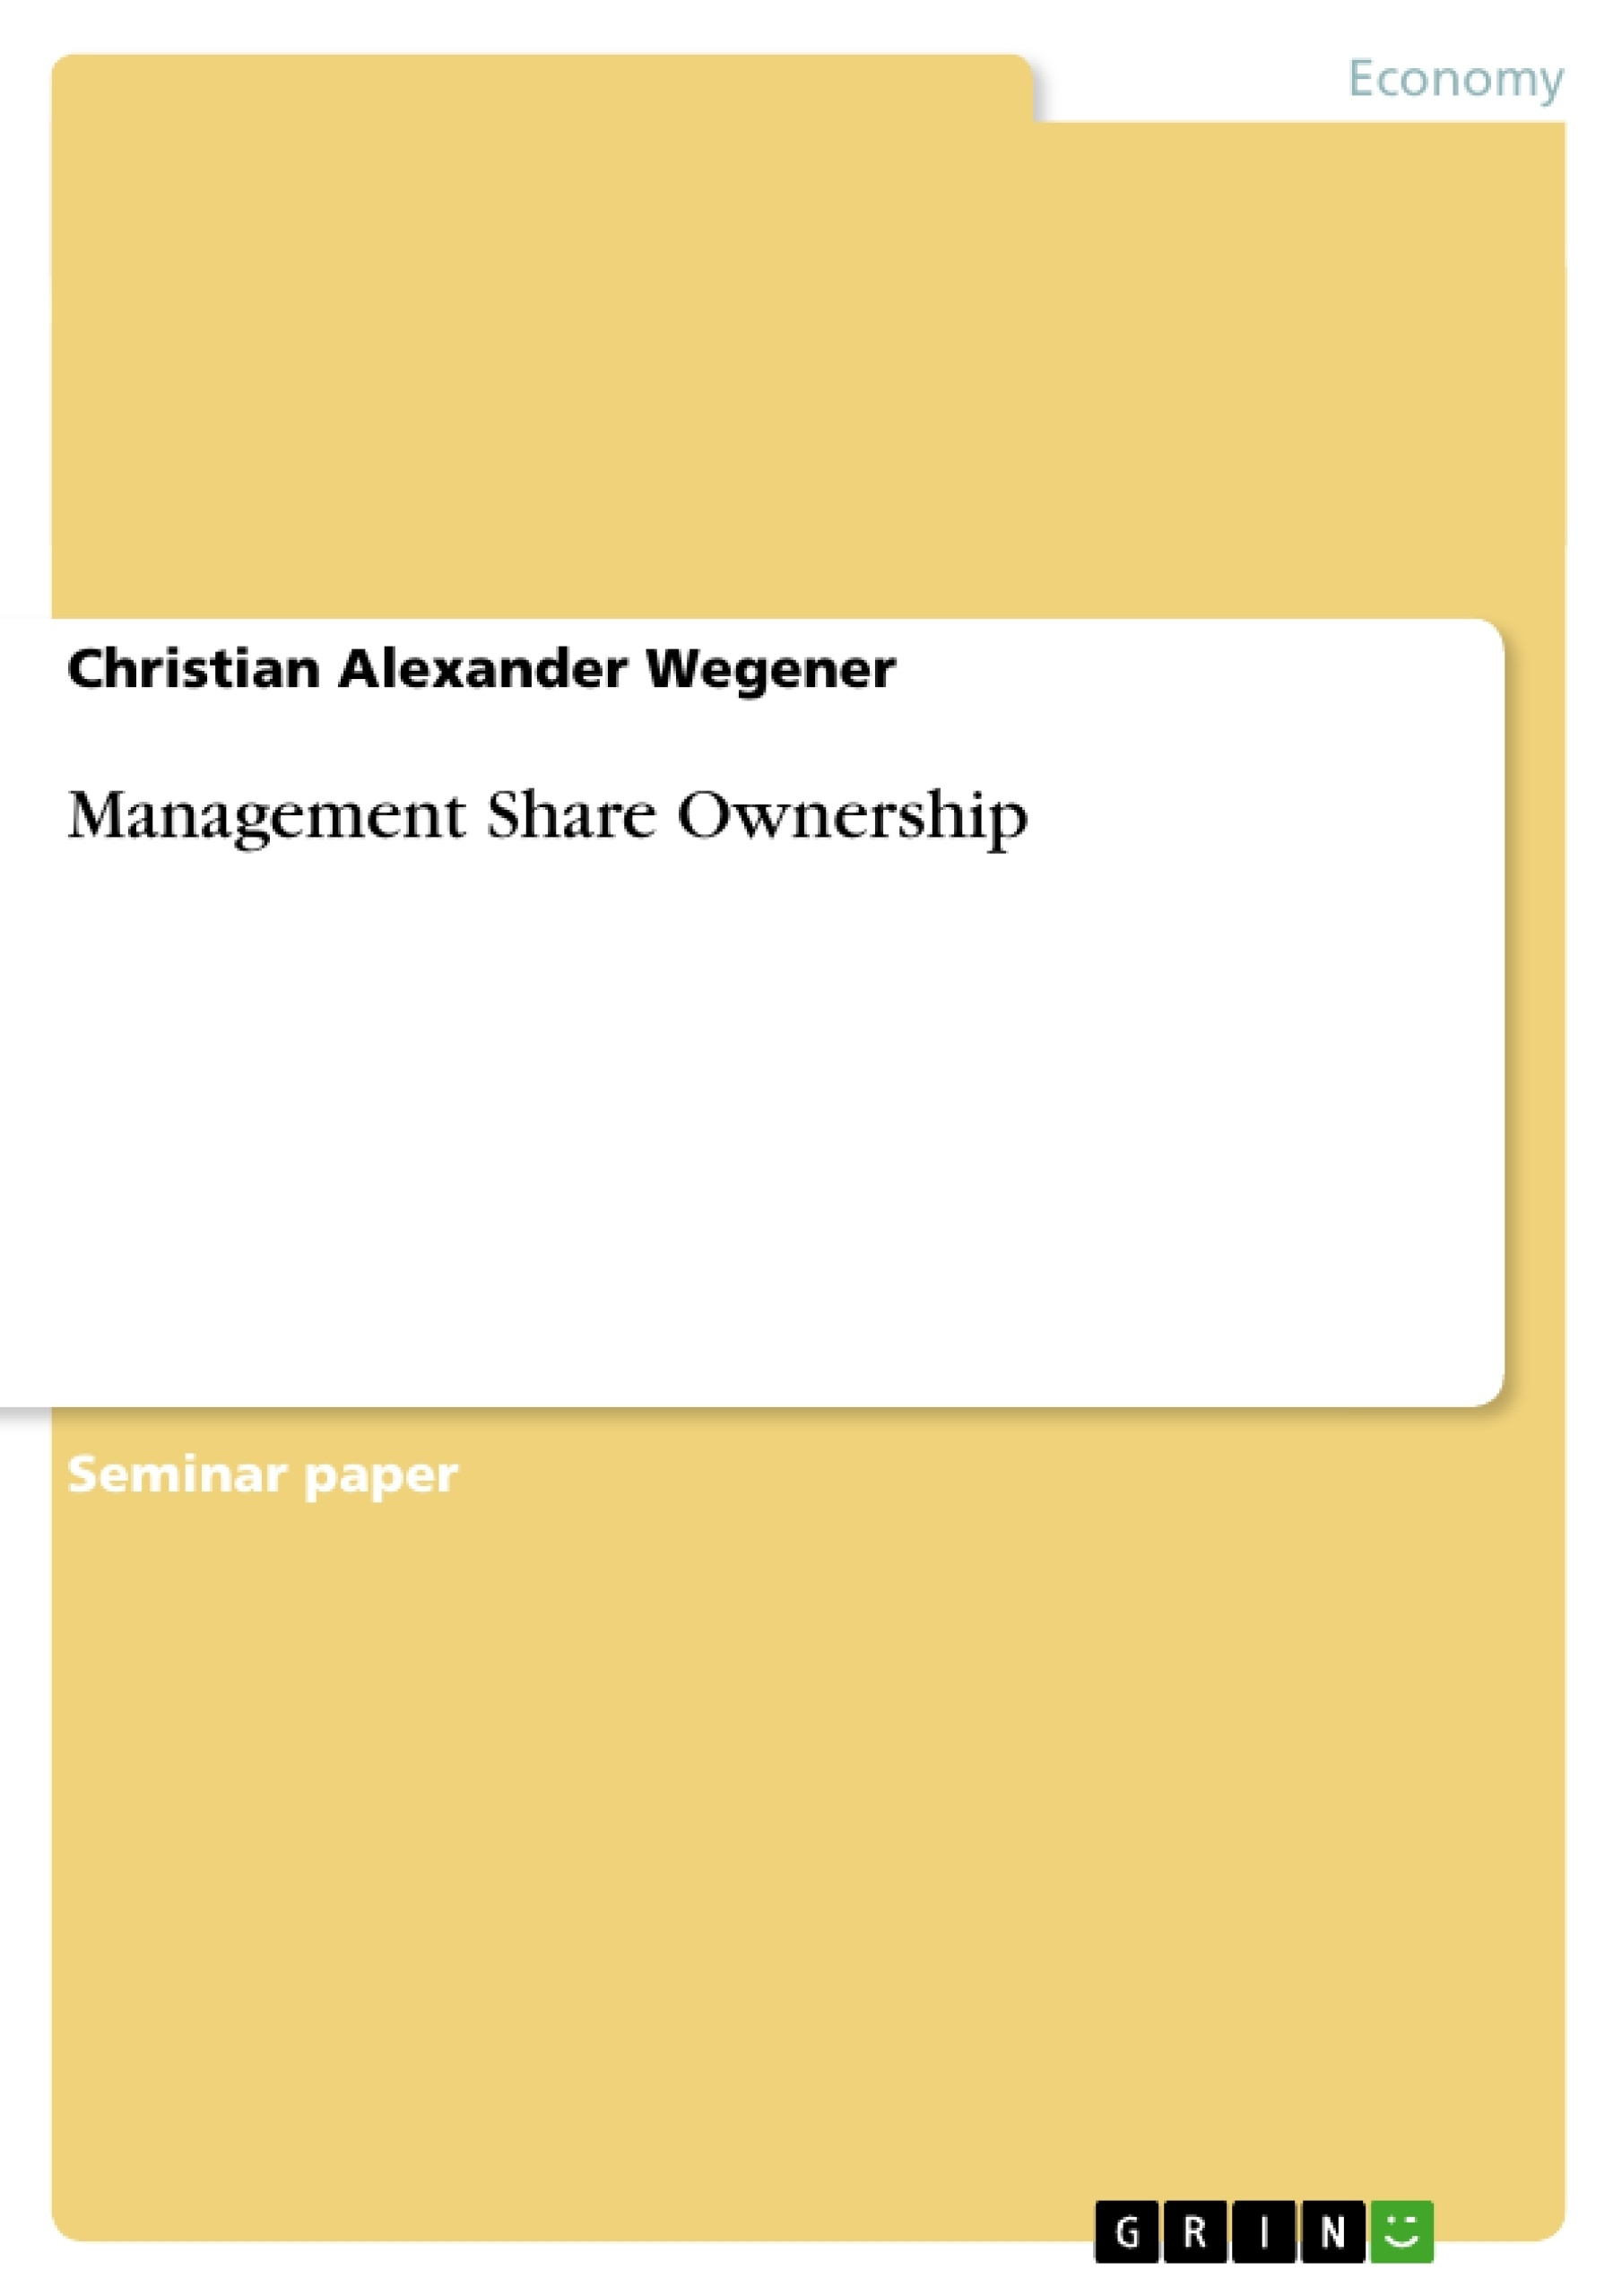 Title: Management Share Ownership